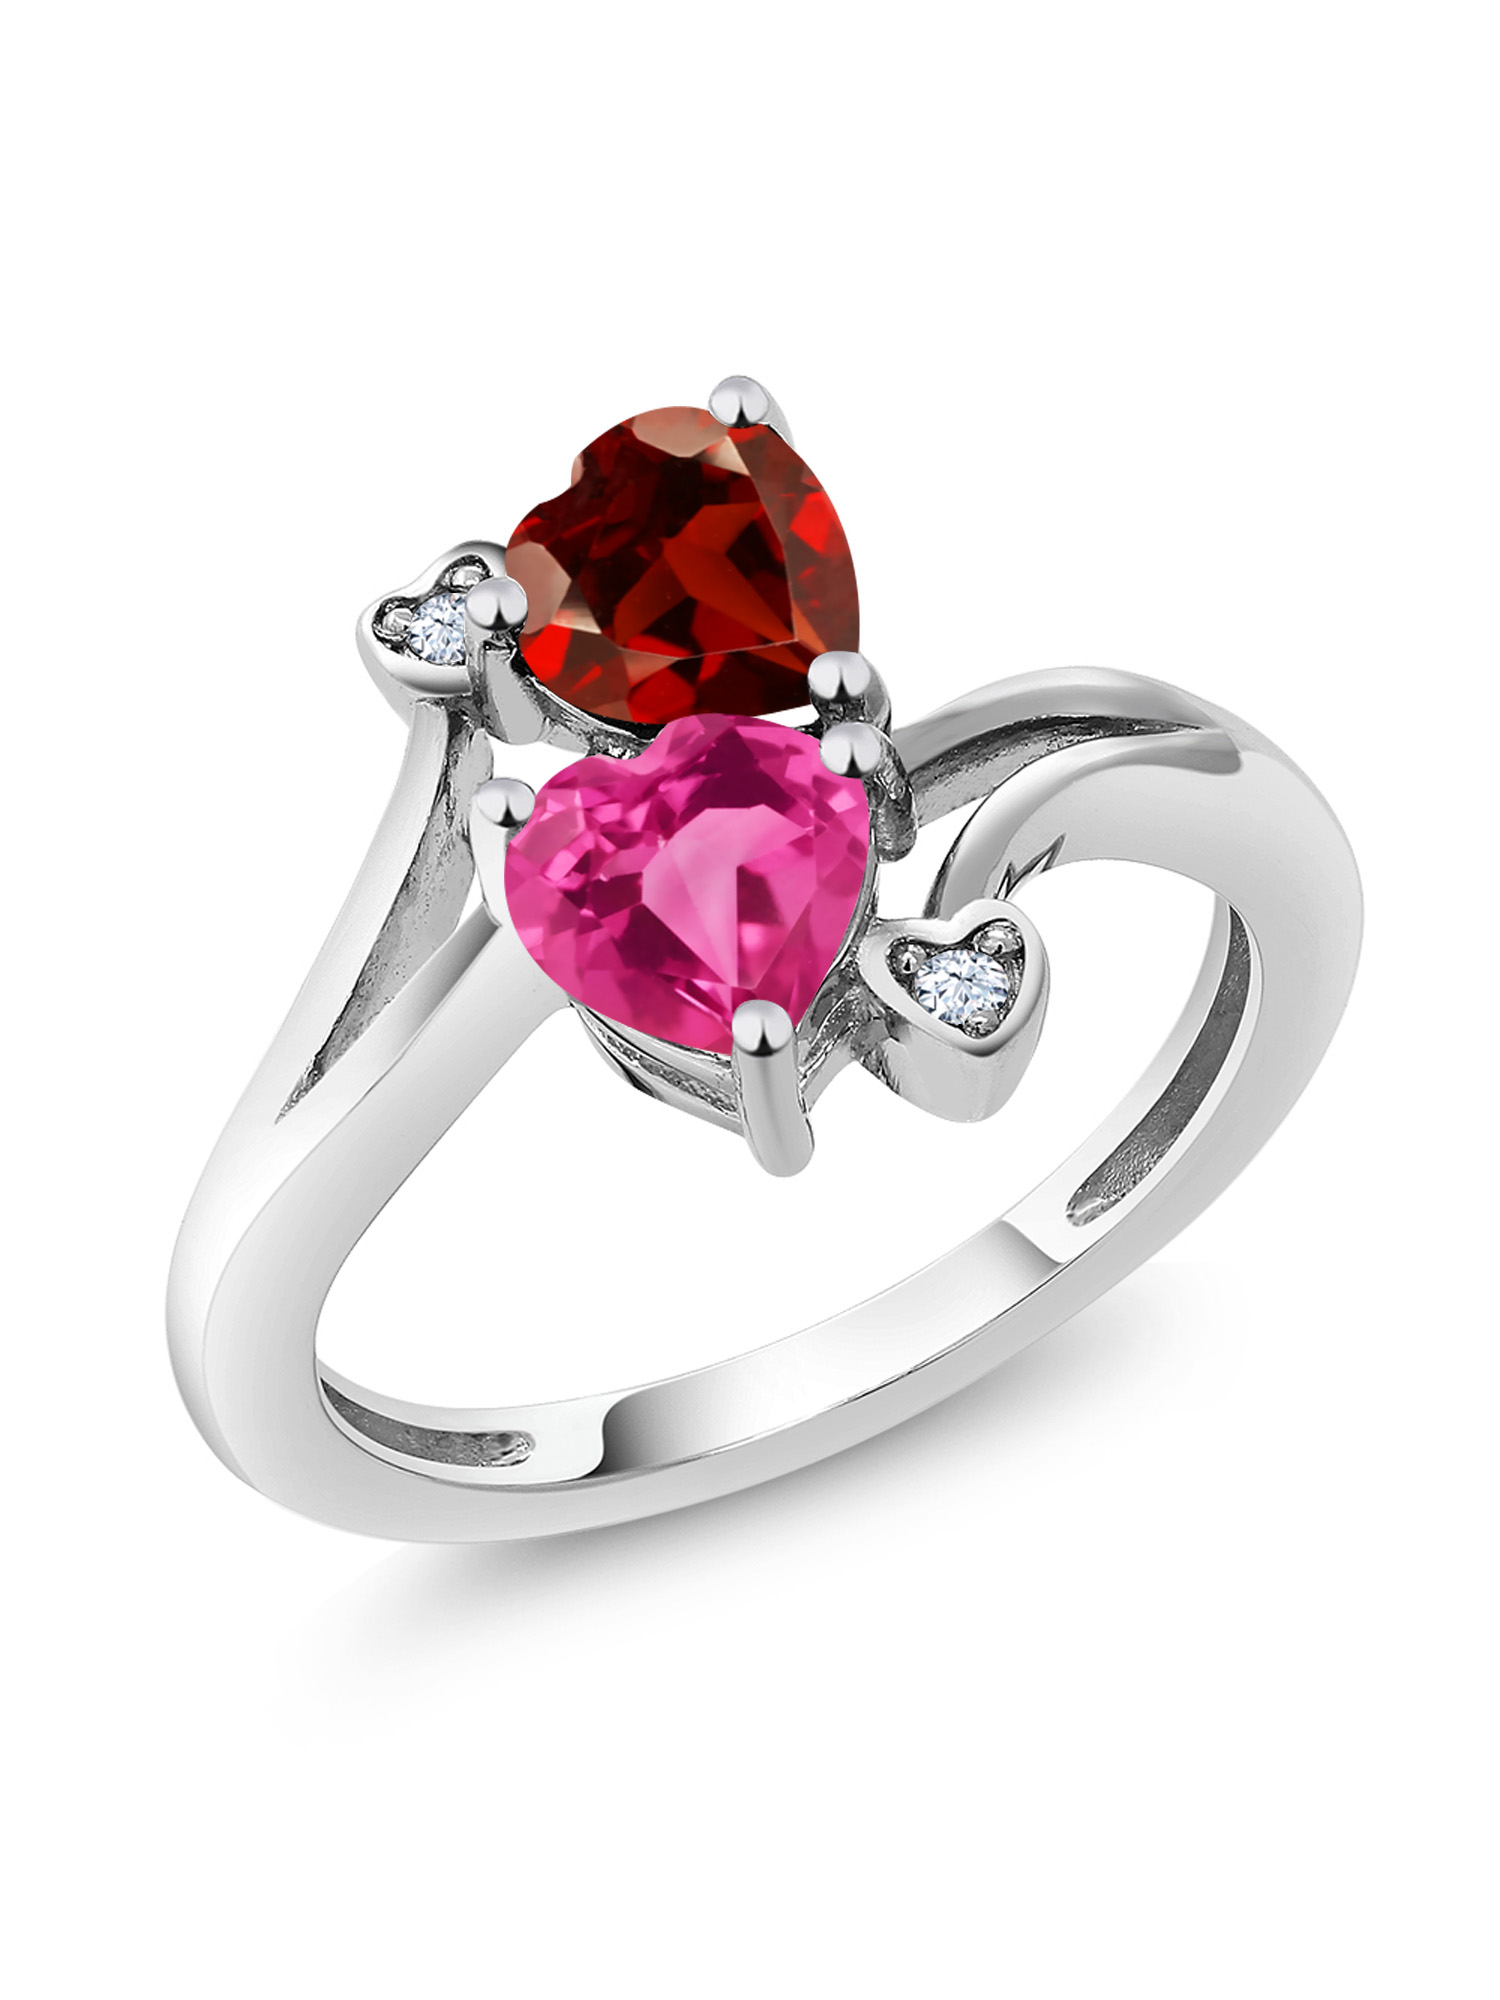 1.73 Ct Heart Shape Pink Created Sapphire Red Garnet 10K White Gold Ring by